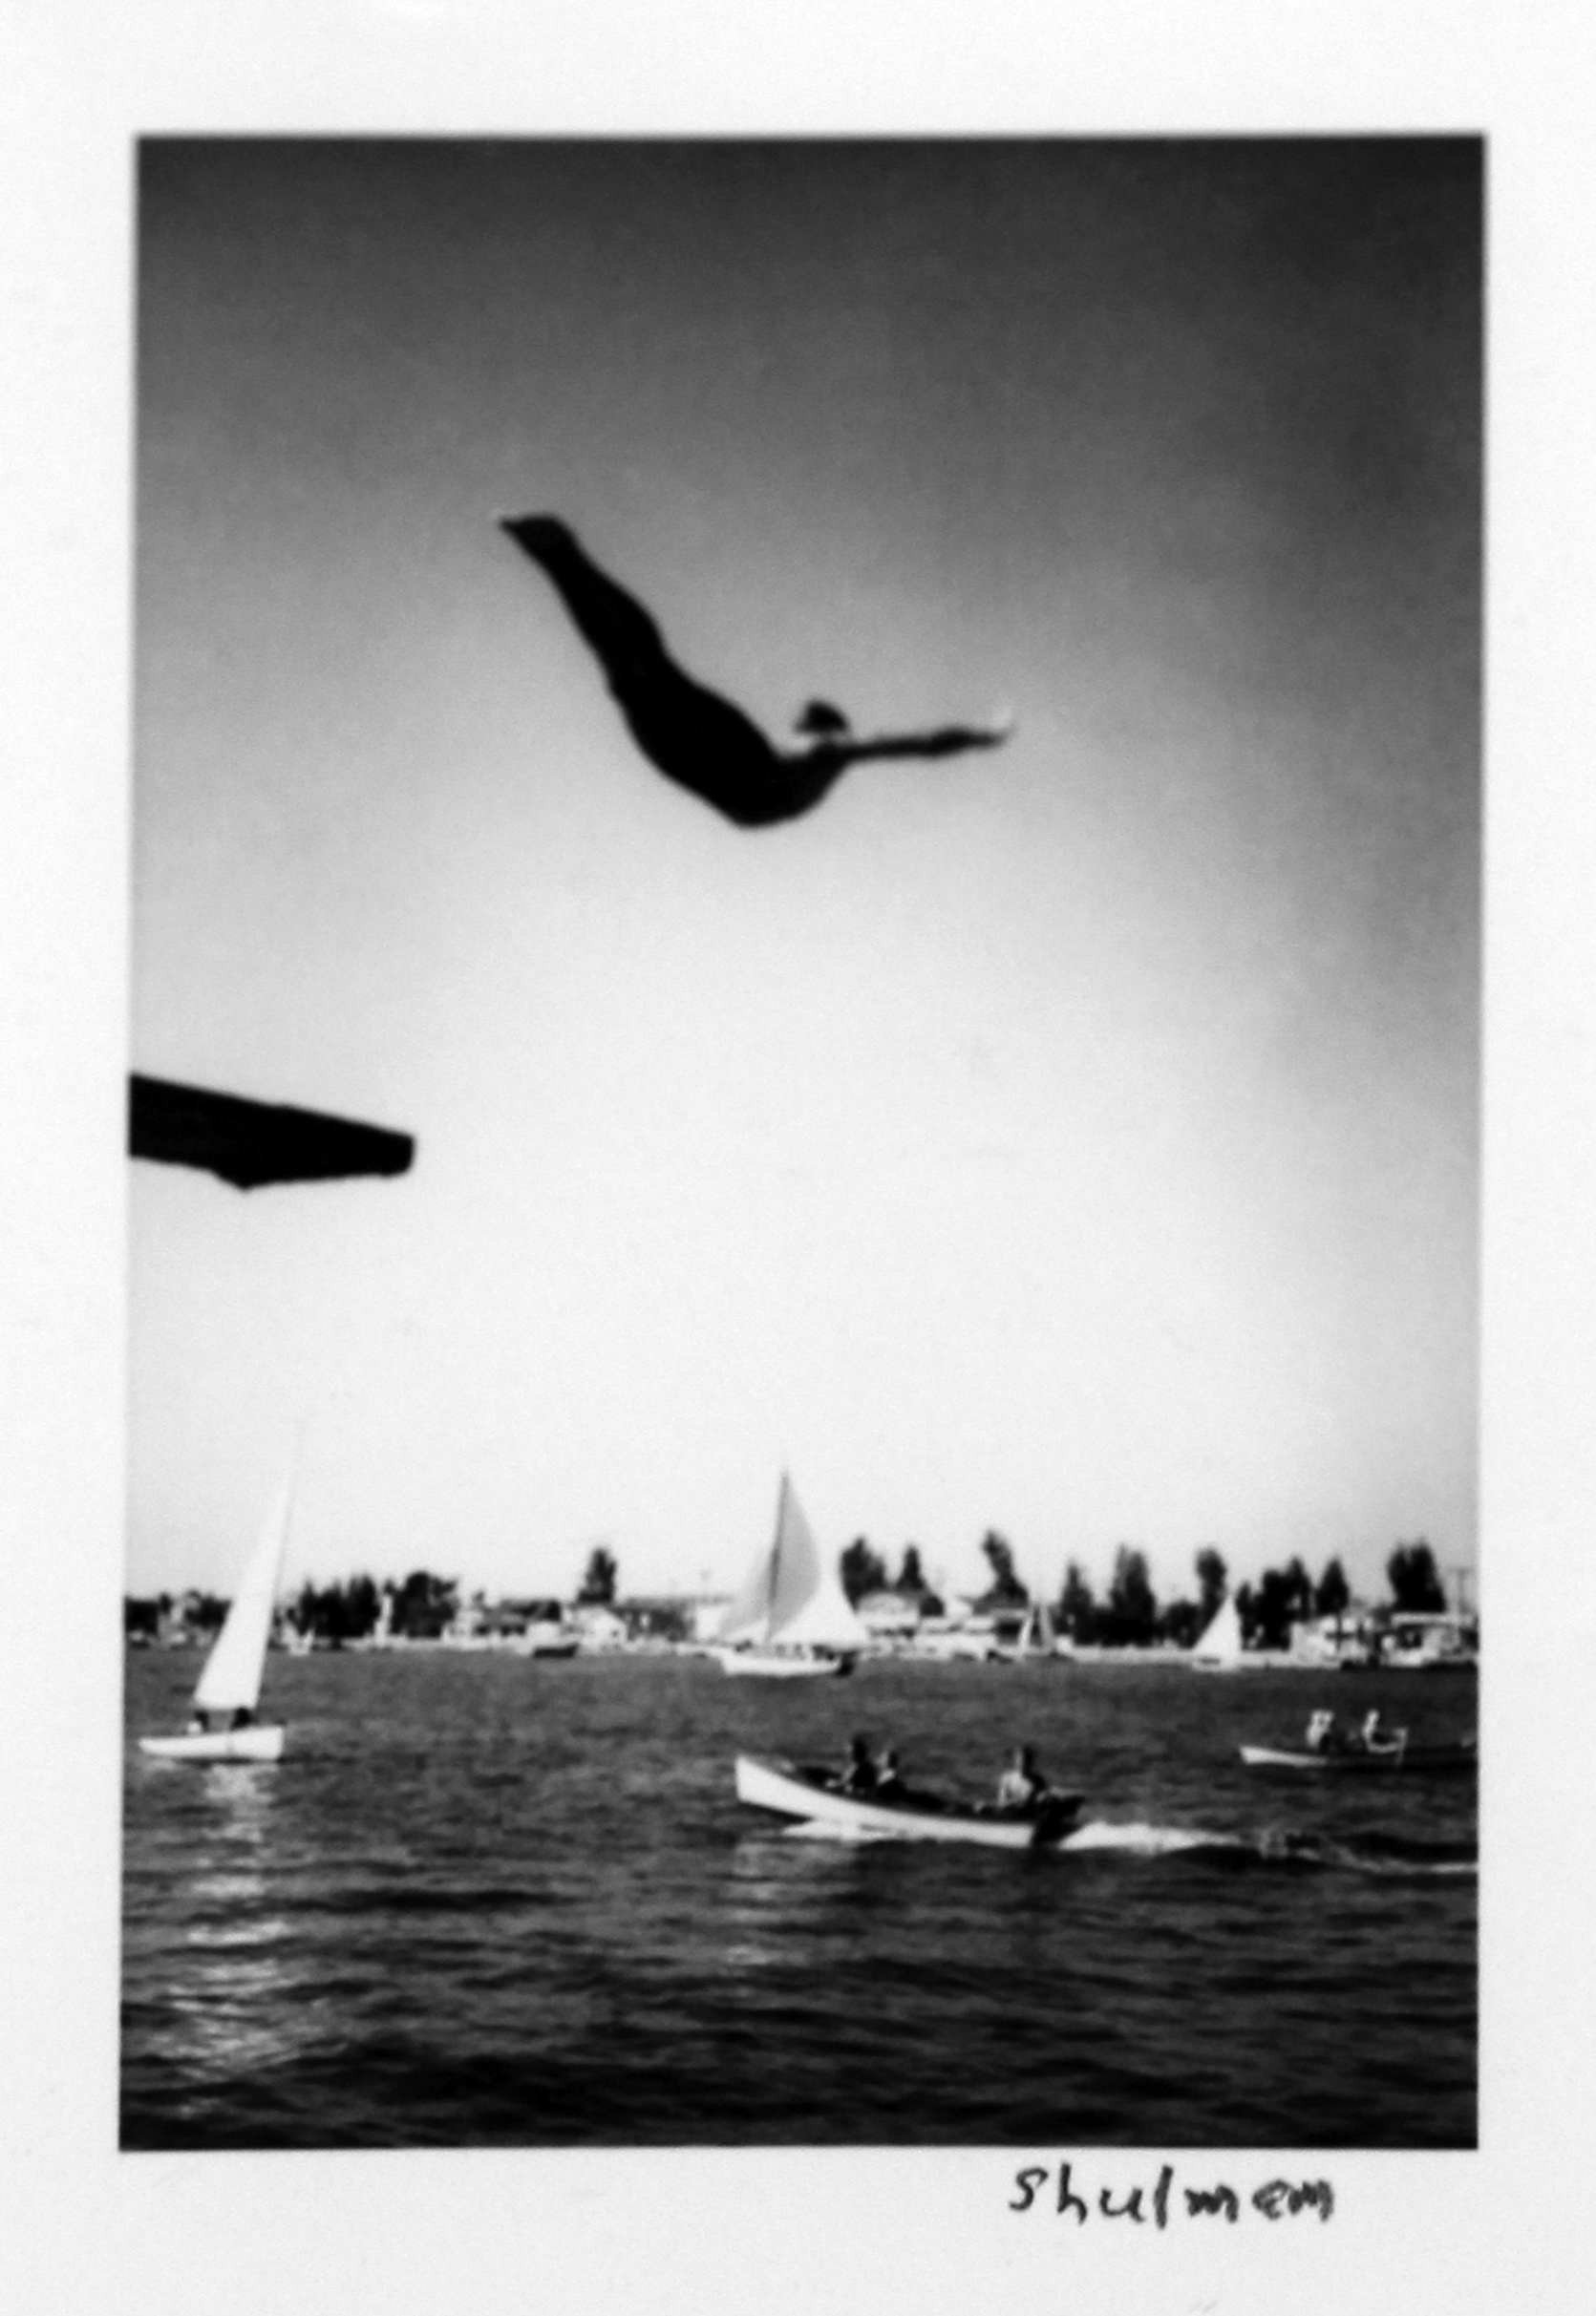 Julius Shulman  (American, 1910-2009)  Self-Portrait Diving into Newport Harbor, from the Vest Pocket Pictures series , 1930's/Printed Later Later gelatin silver print Signed on recto Image: 3 x 2 inches; Framed: 13.25 x 11.25 inches Provenance: The Estate of Ms. Gaby Stuart/Primus-Stewart Gallery, Los Angeles, CA Estimate: $1,500/$1,800